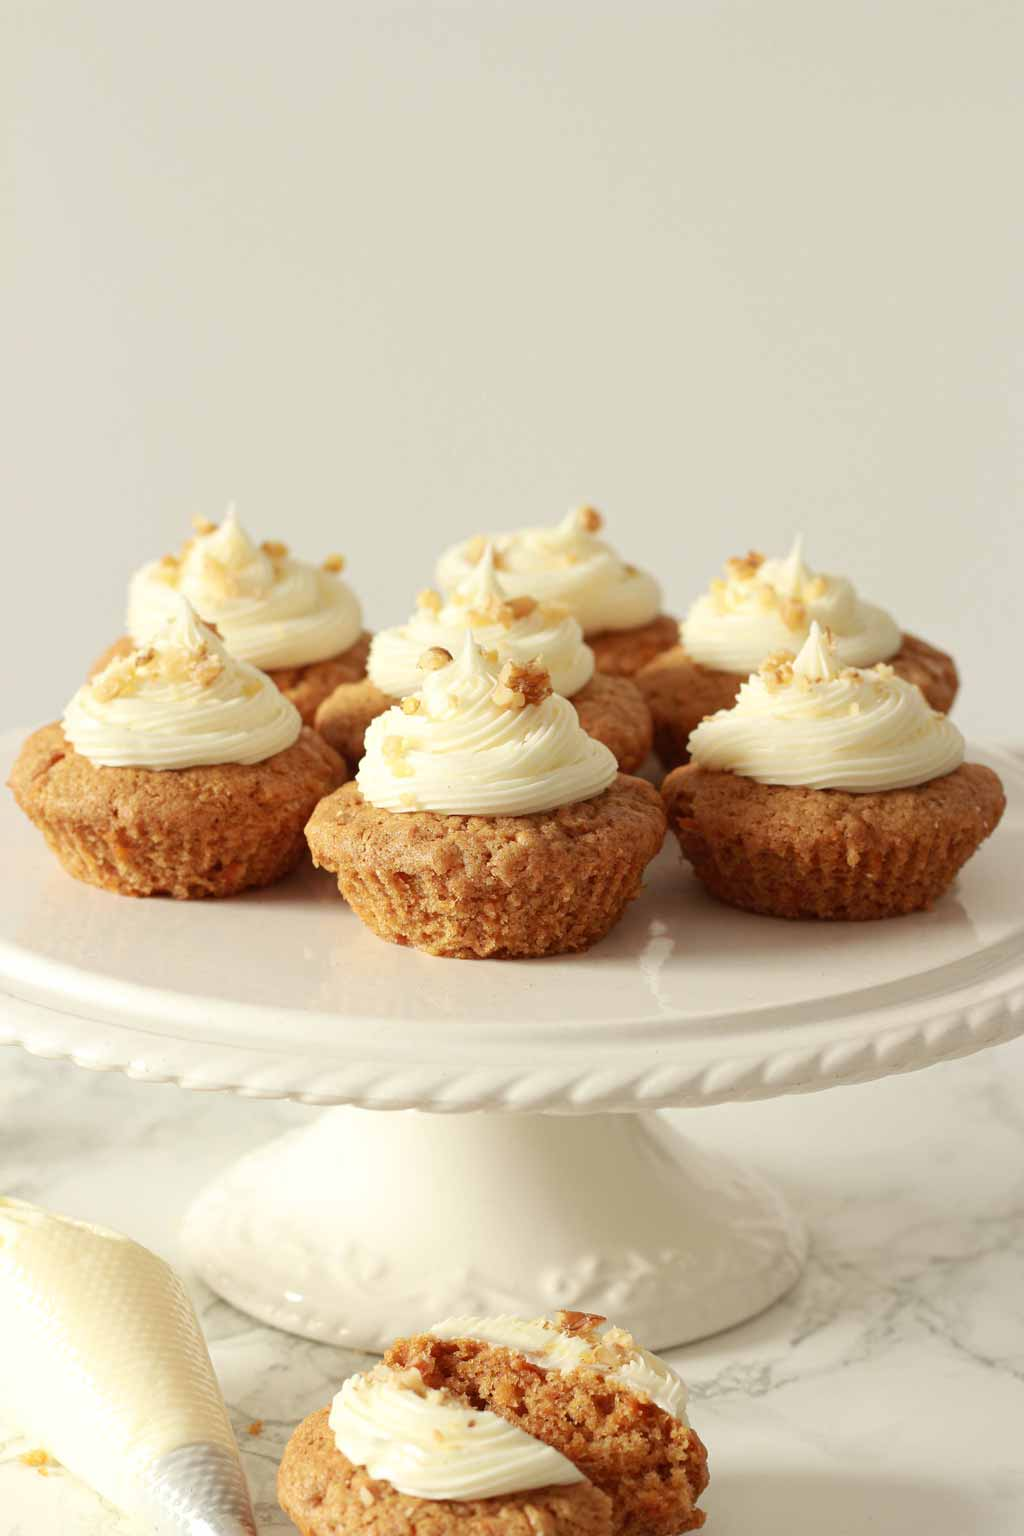 Vegan Carrot Cupcakes On A White Cake Stand